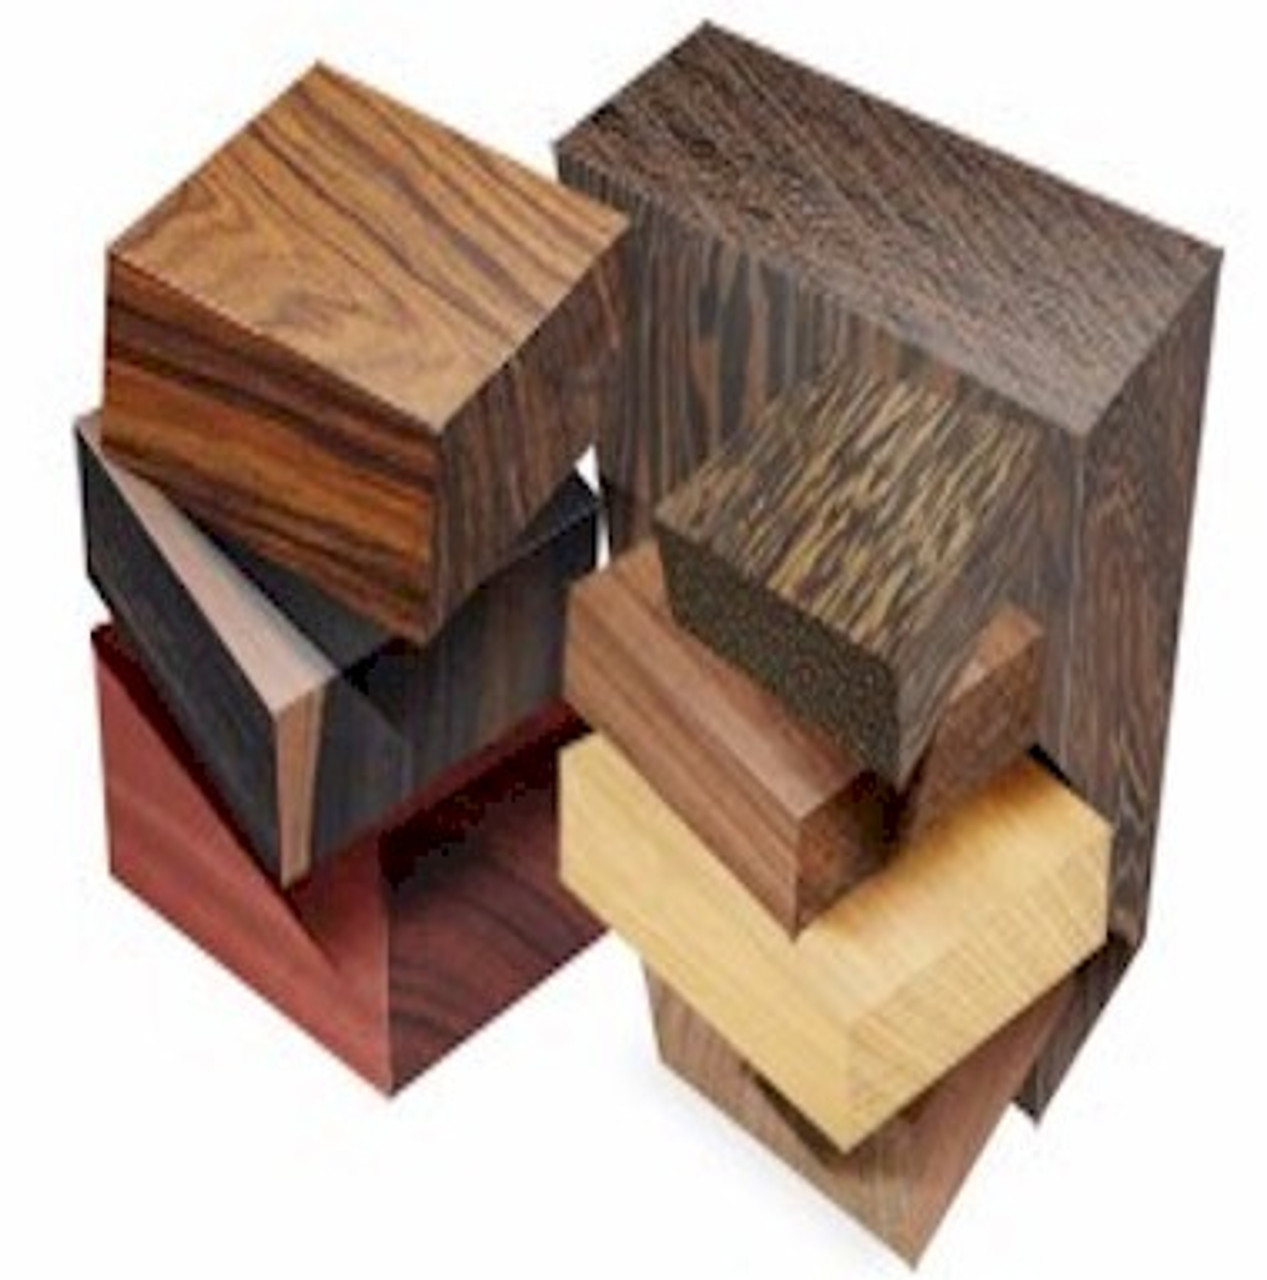 WOOD OF THE MONTH